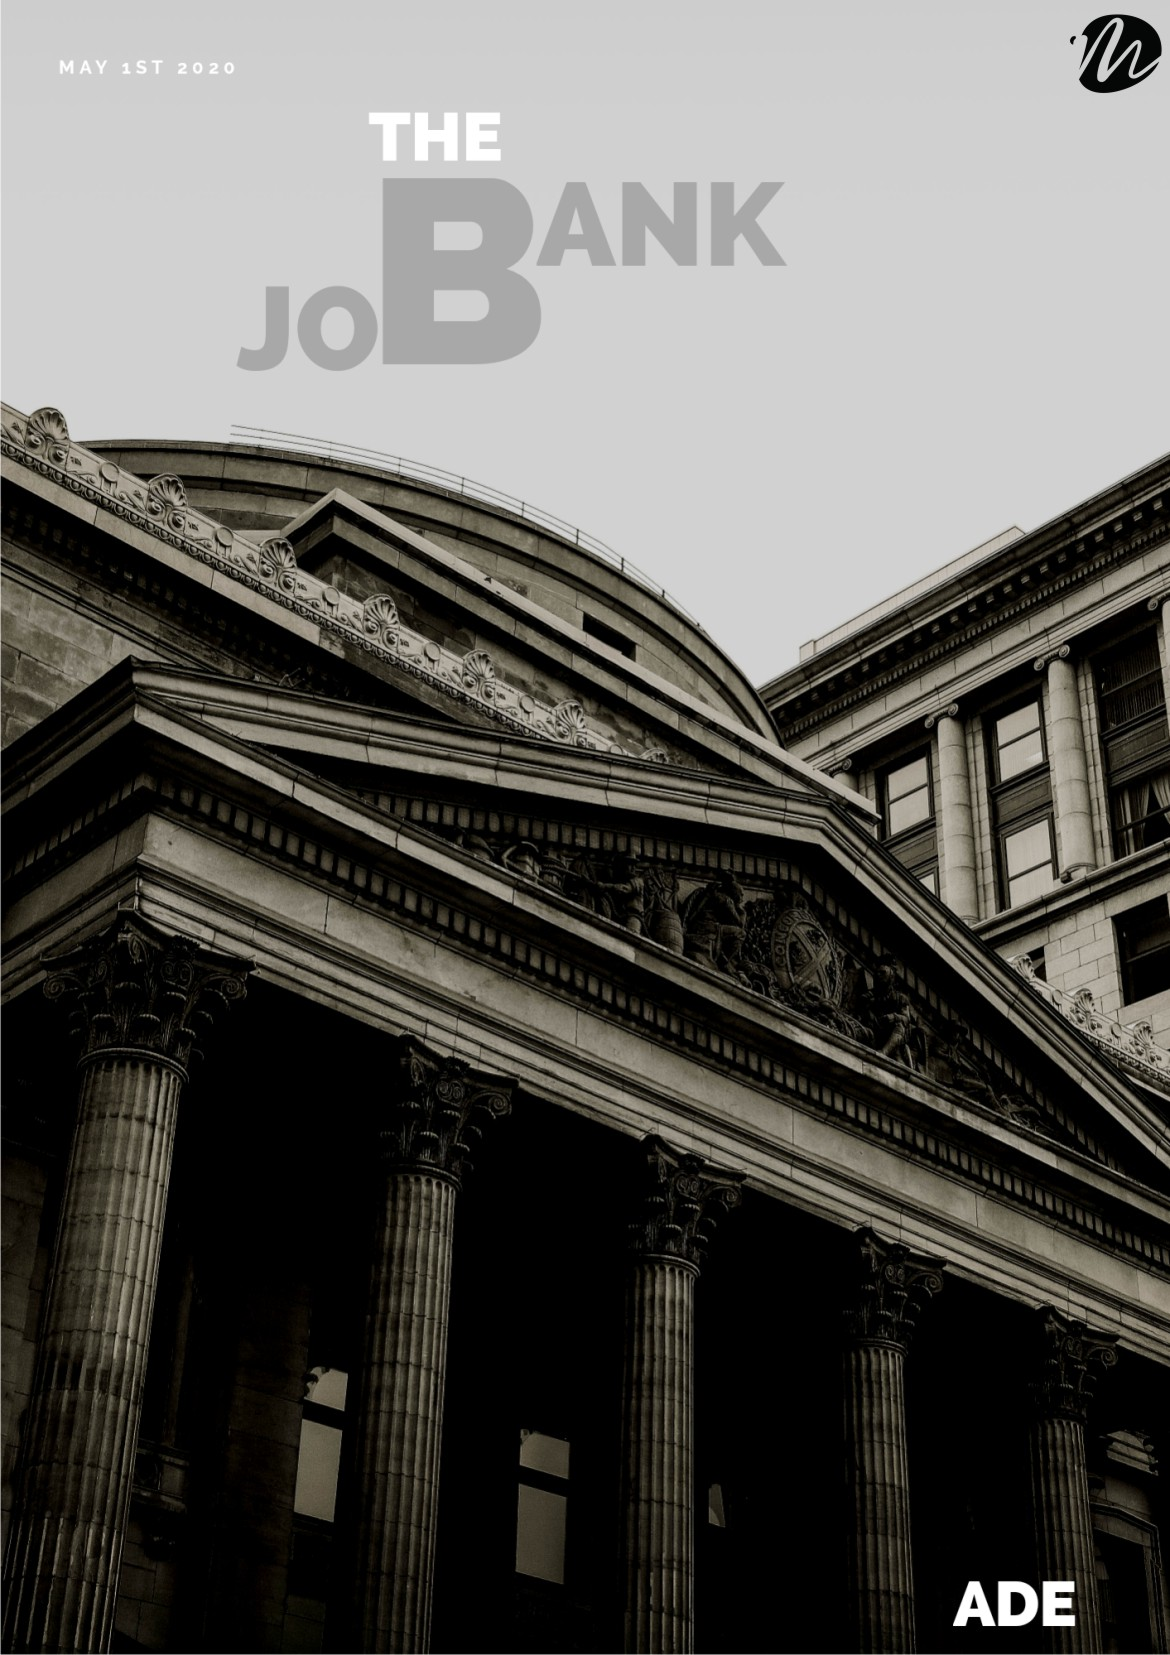 The bank job cover